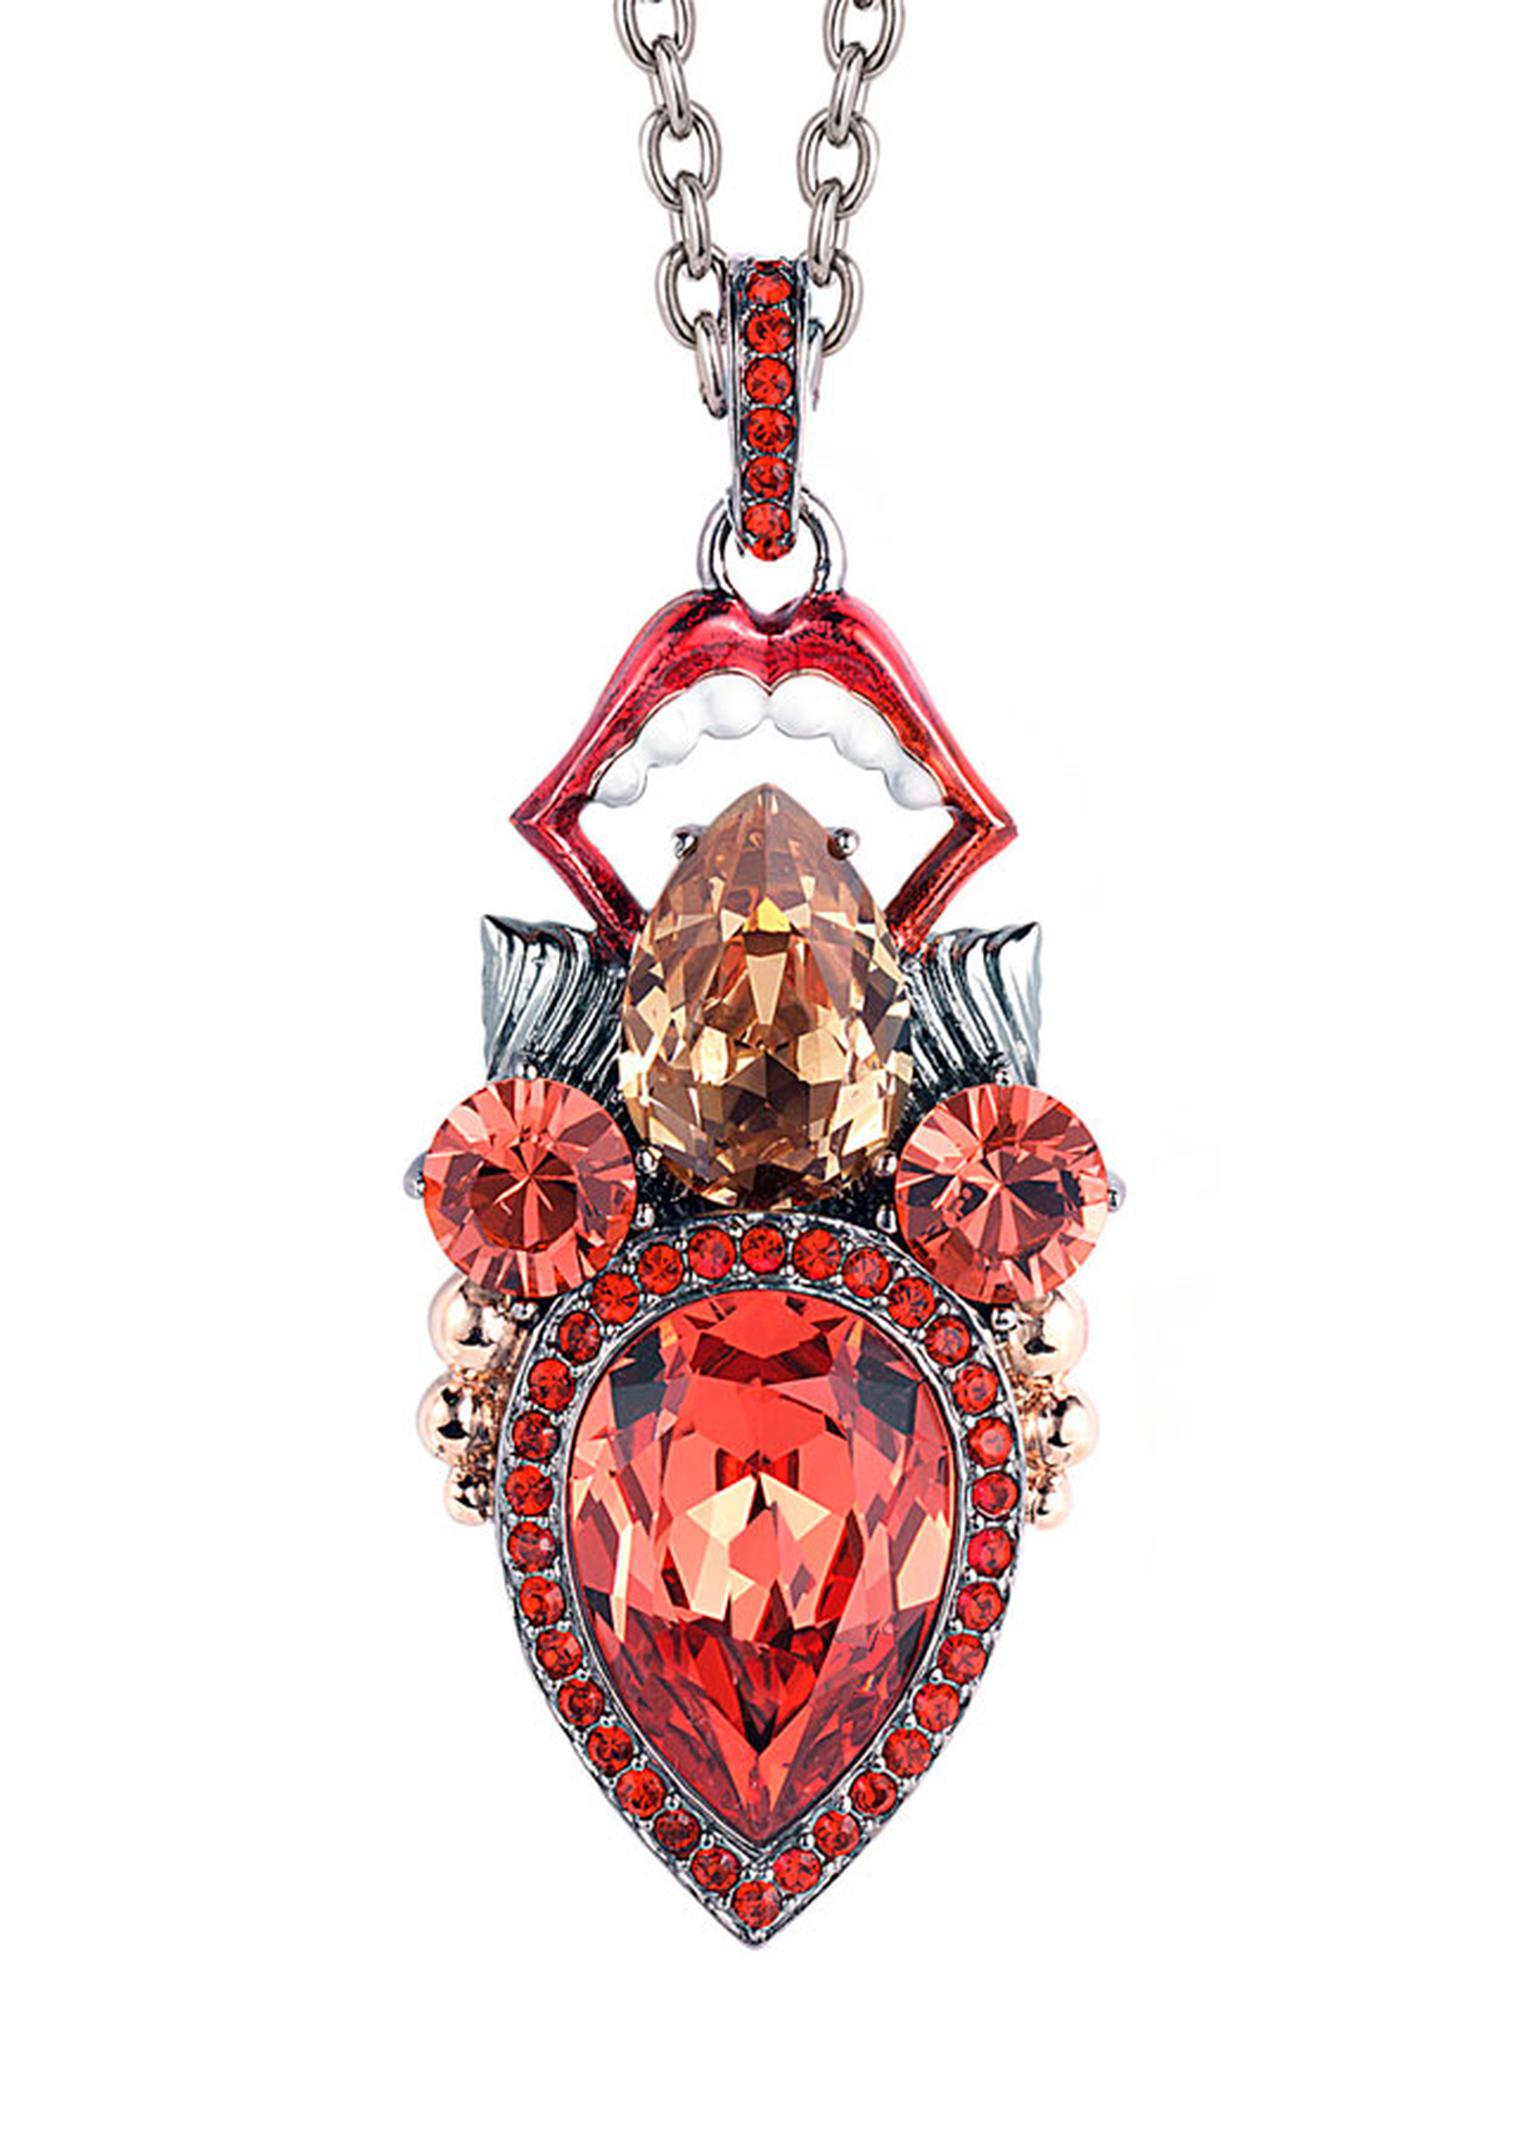 Stephen Webster Seven Deadly Sins Gluttony Pendant set in sterling silver with pave crystals 650